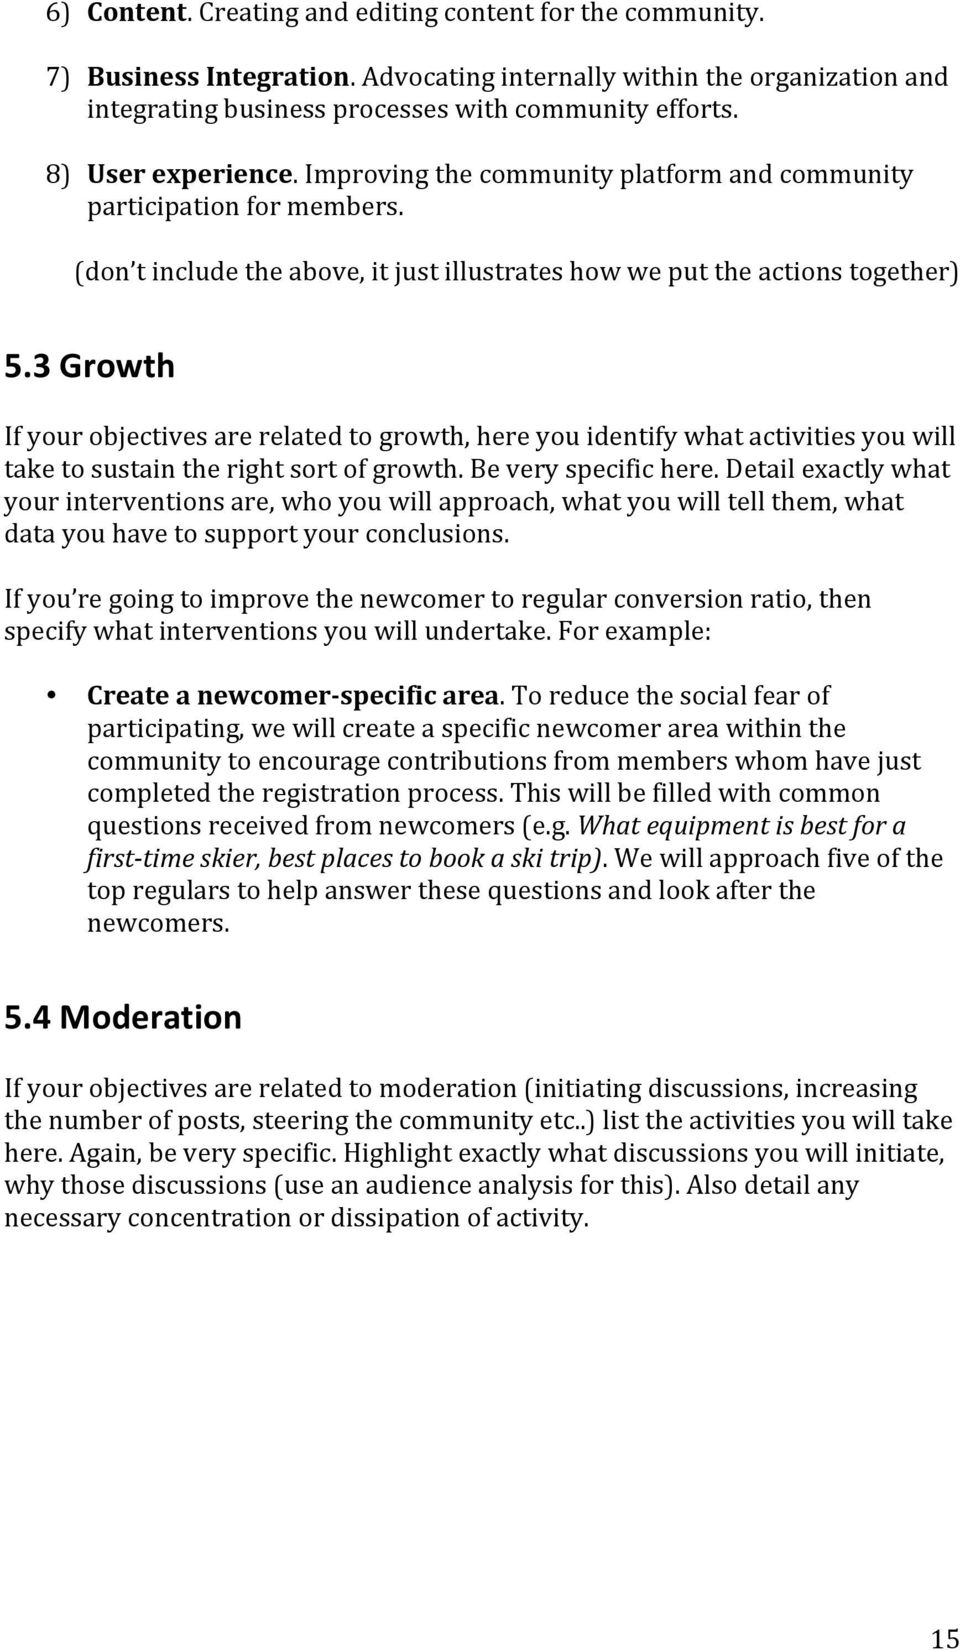 3 Growth If your objectives are related to growth, here you identify what activities you will take to sustain the right sort of growth. Be very specific here.